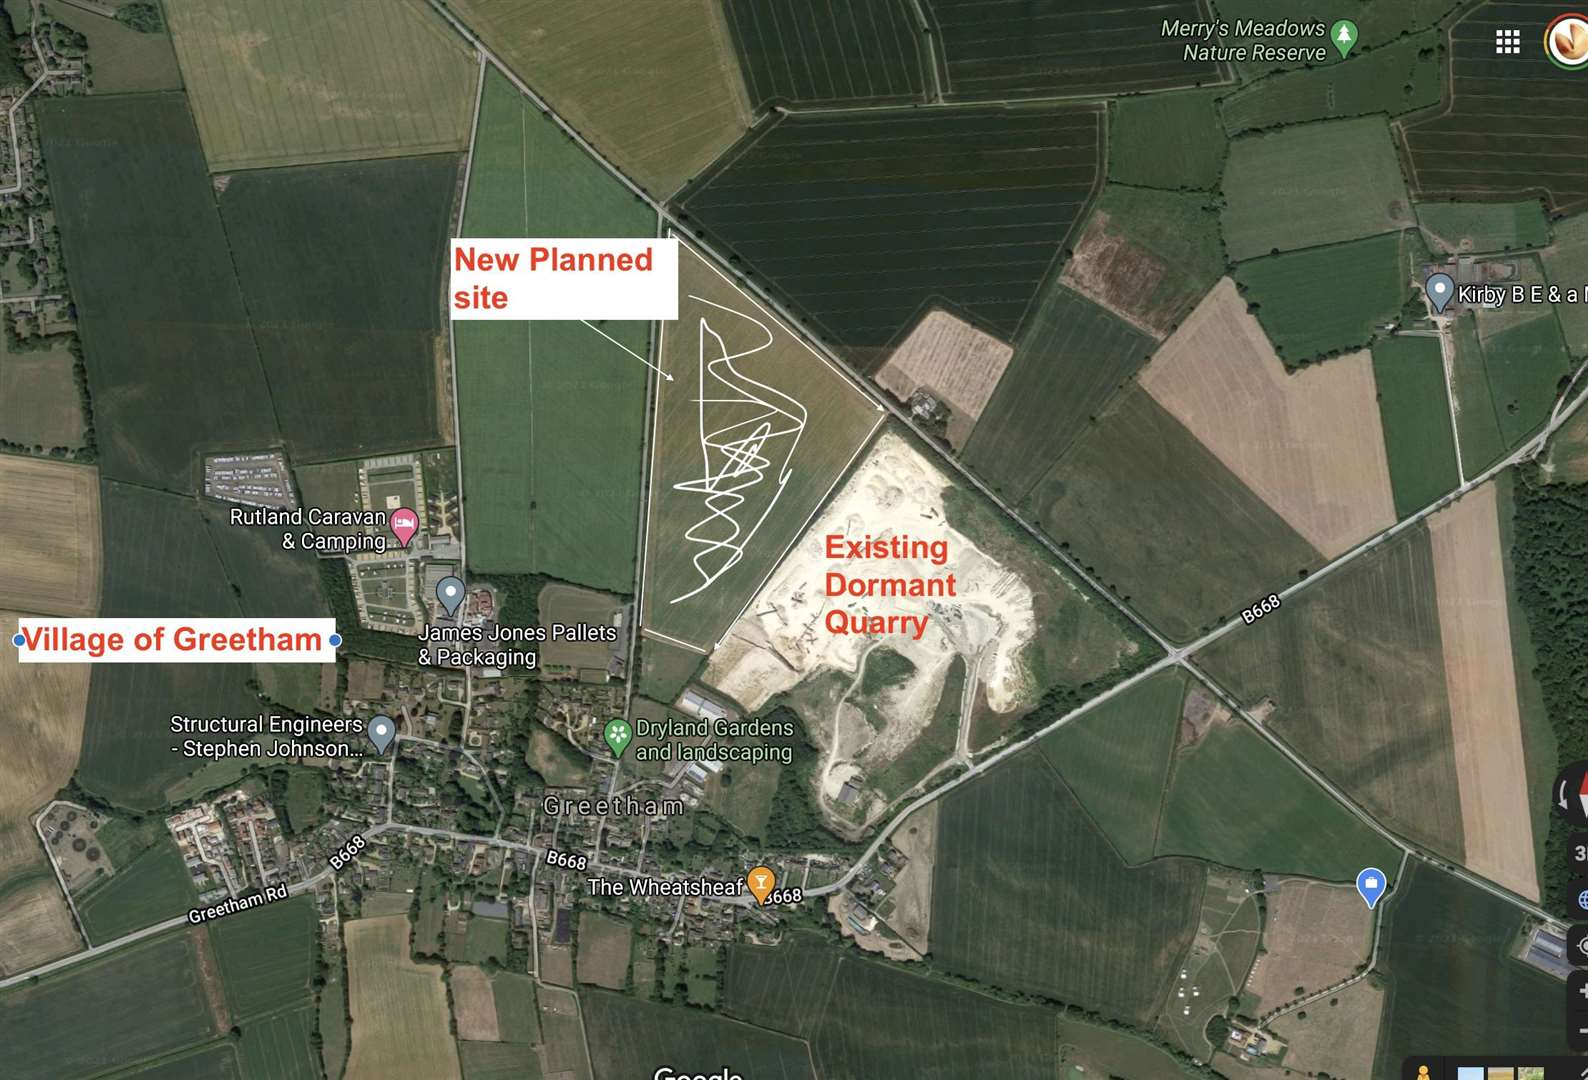 Planning permission has been granted to expand Greetham Quarry